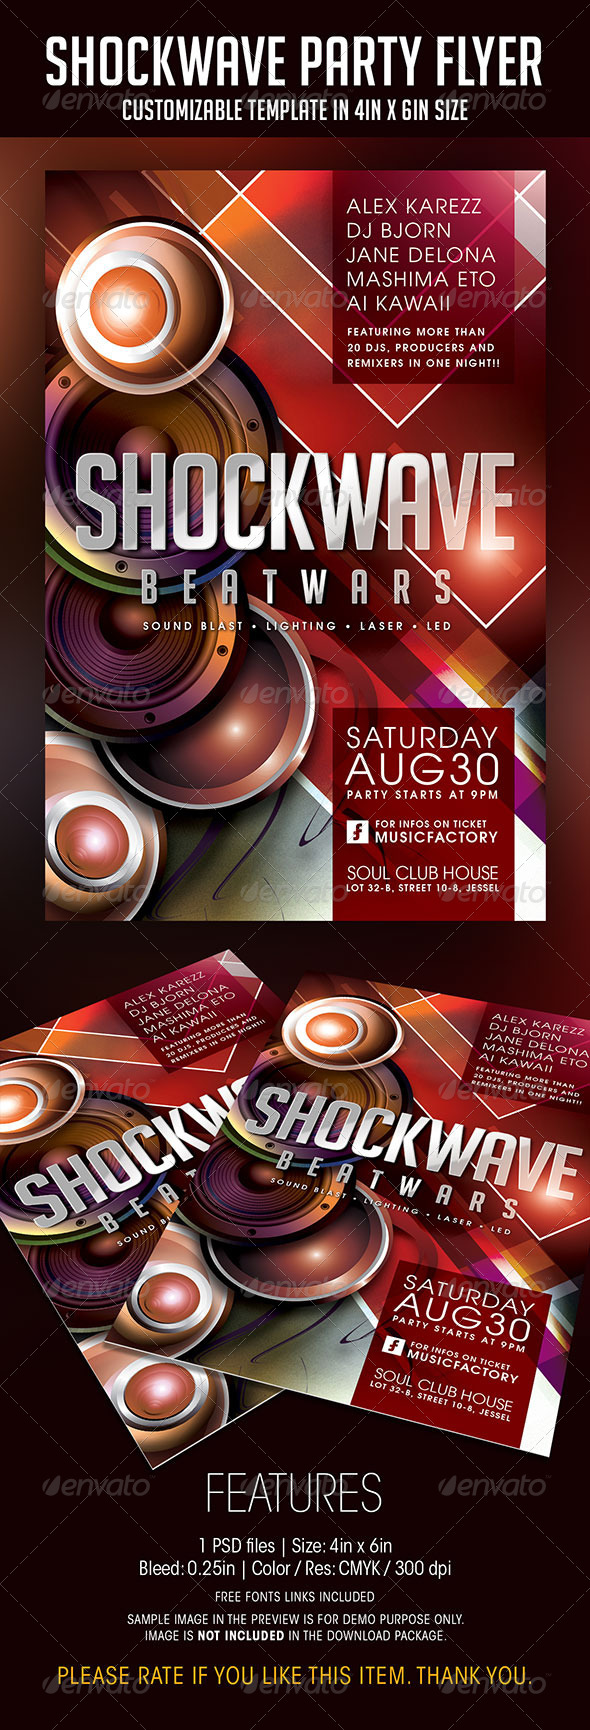 GraphicRiver Shockwave Party Flyer 8338201